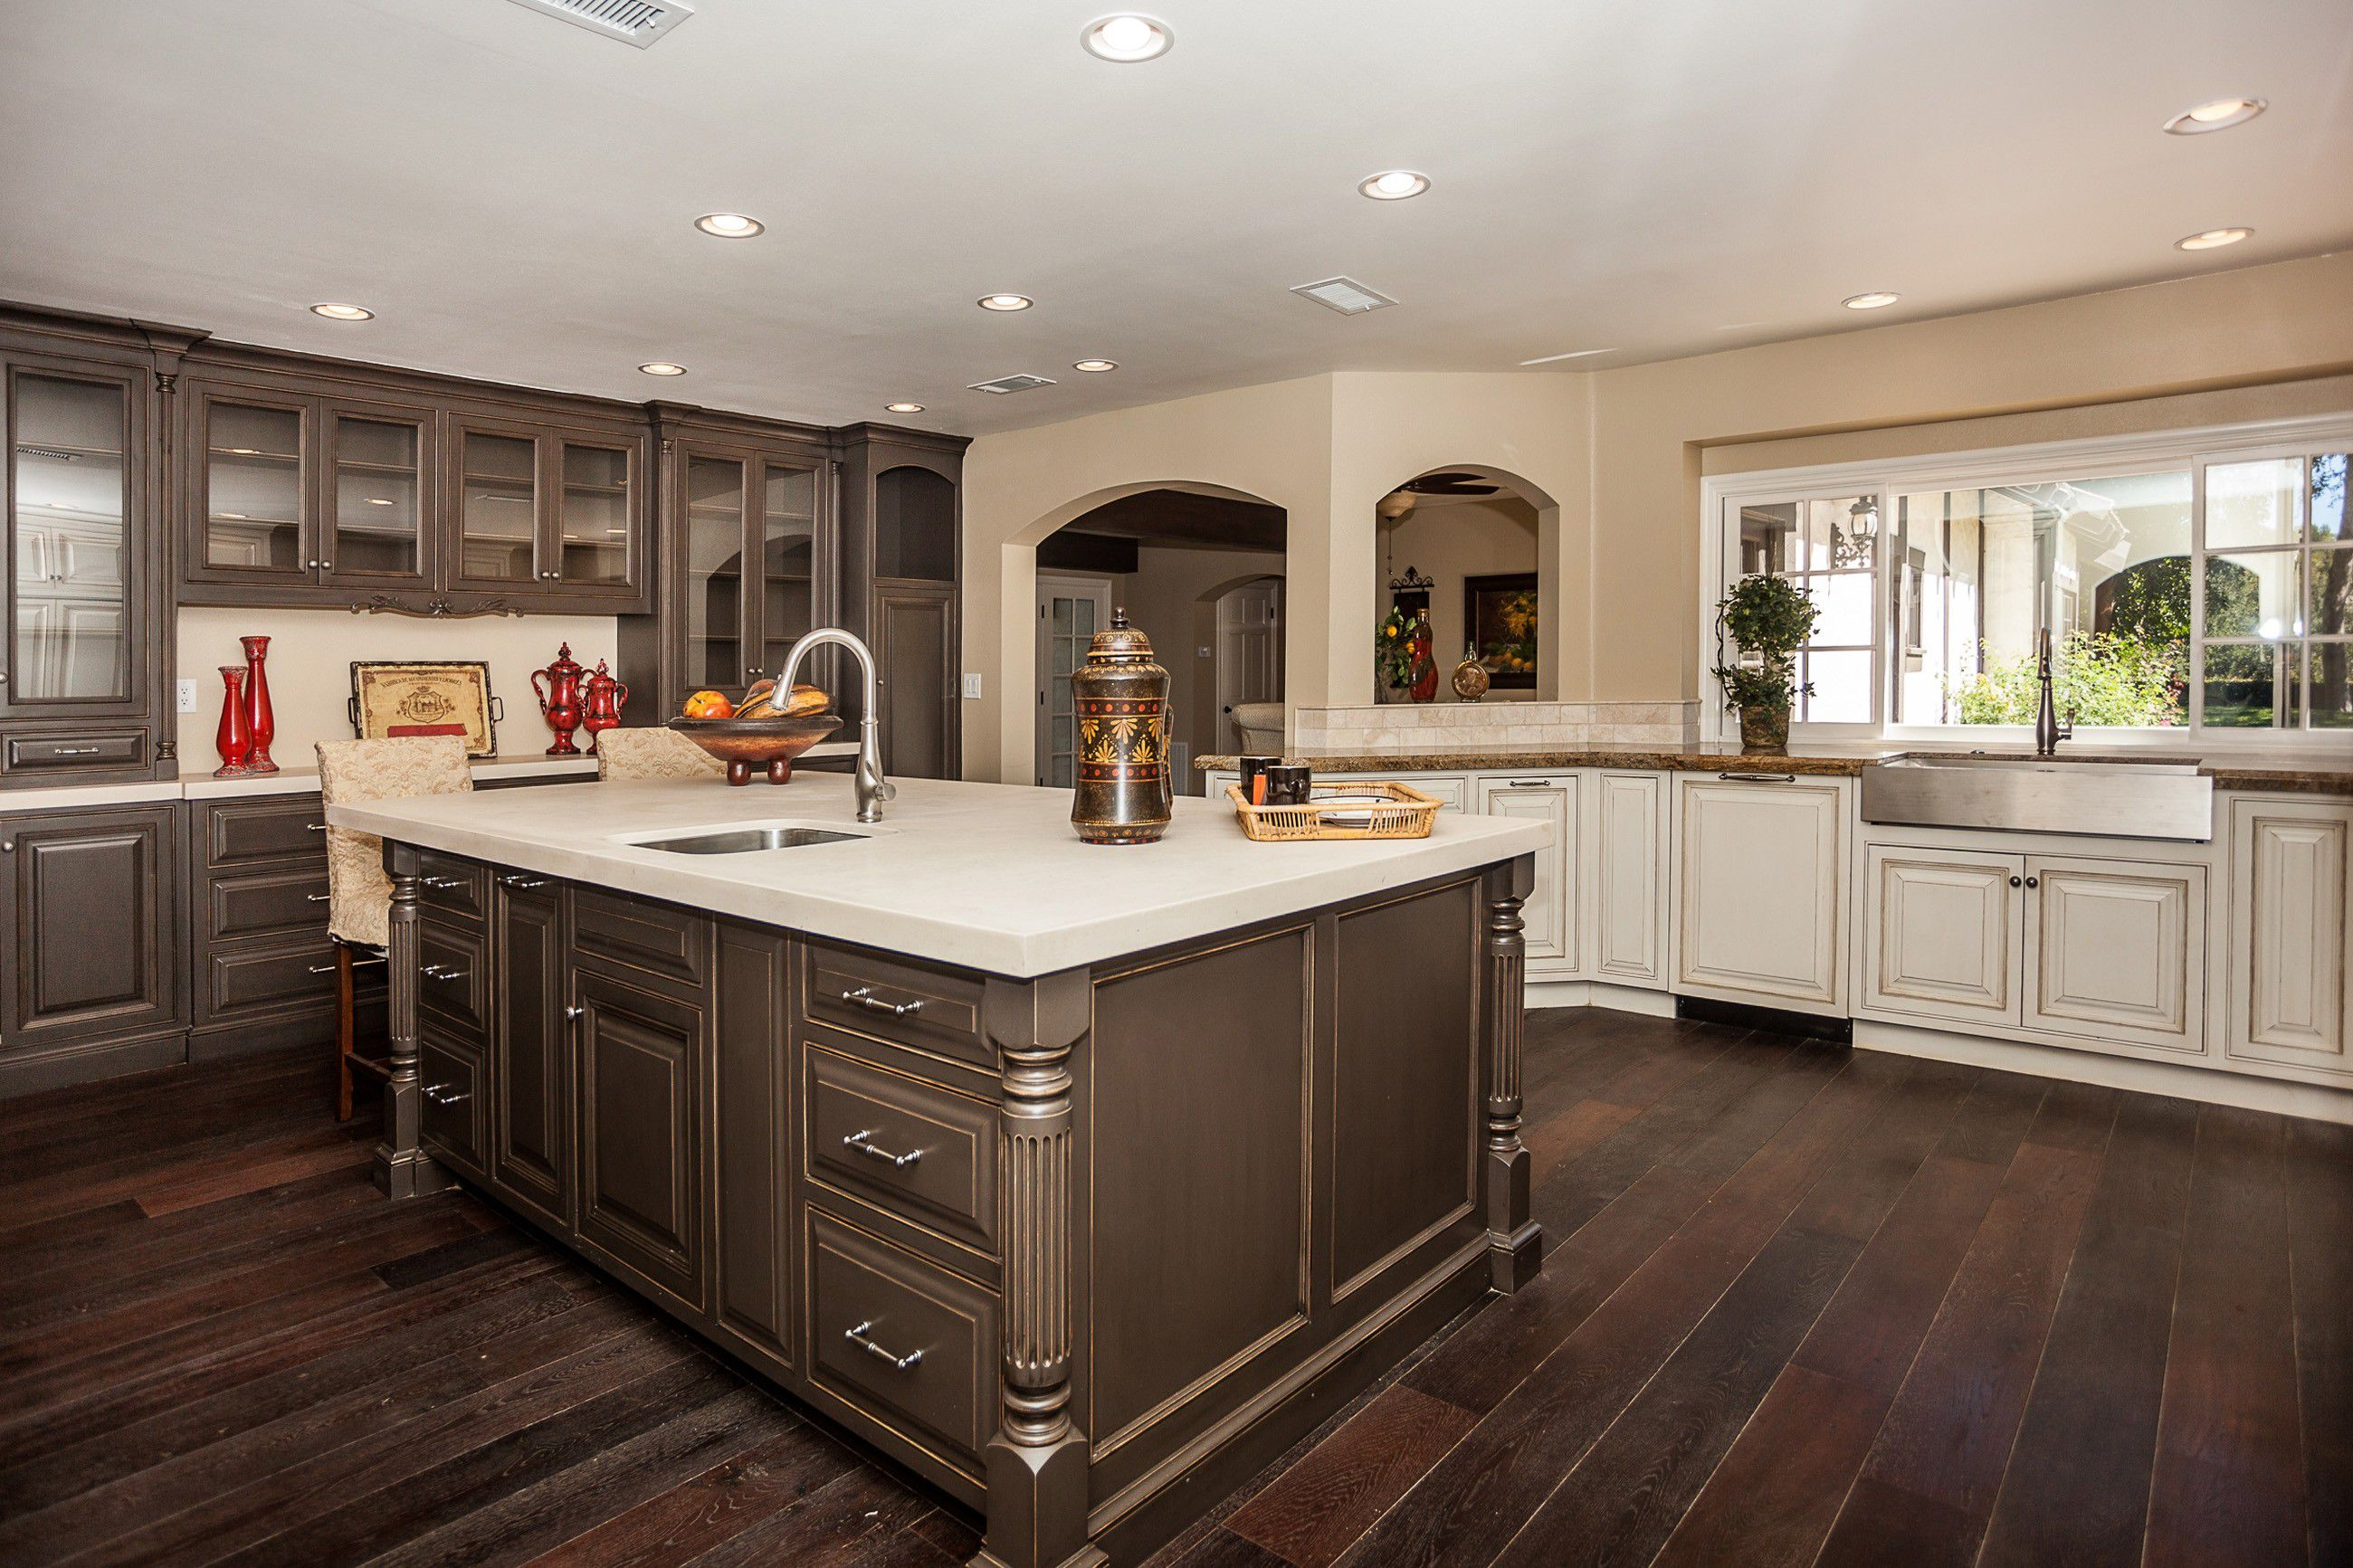 Place Artistic Island in Spacious Kitchen using Classic Paint Kitchen Cabinets and White Framed Windows